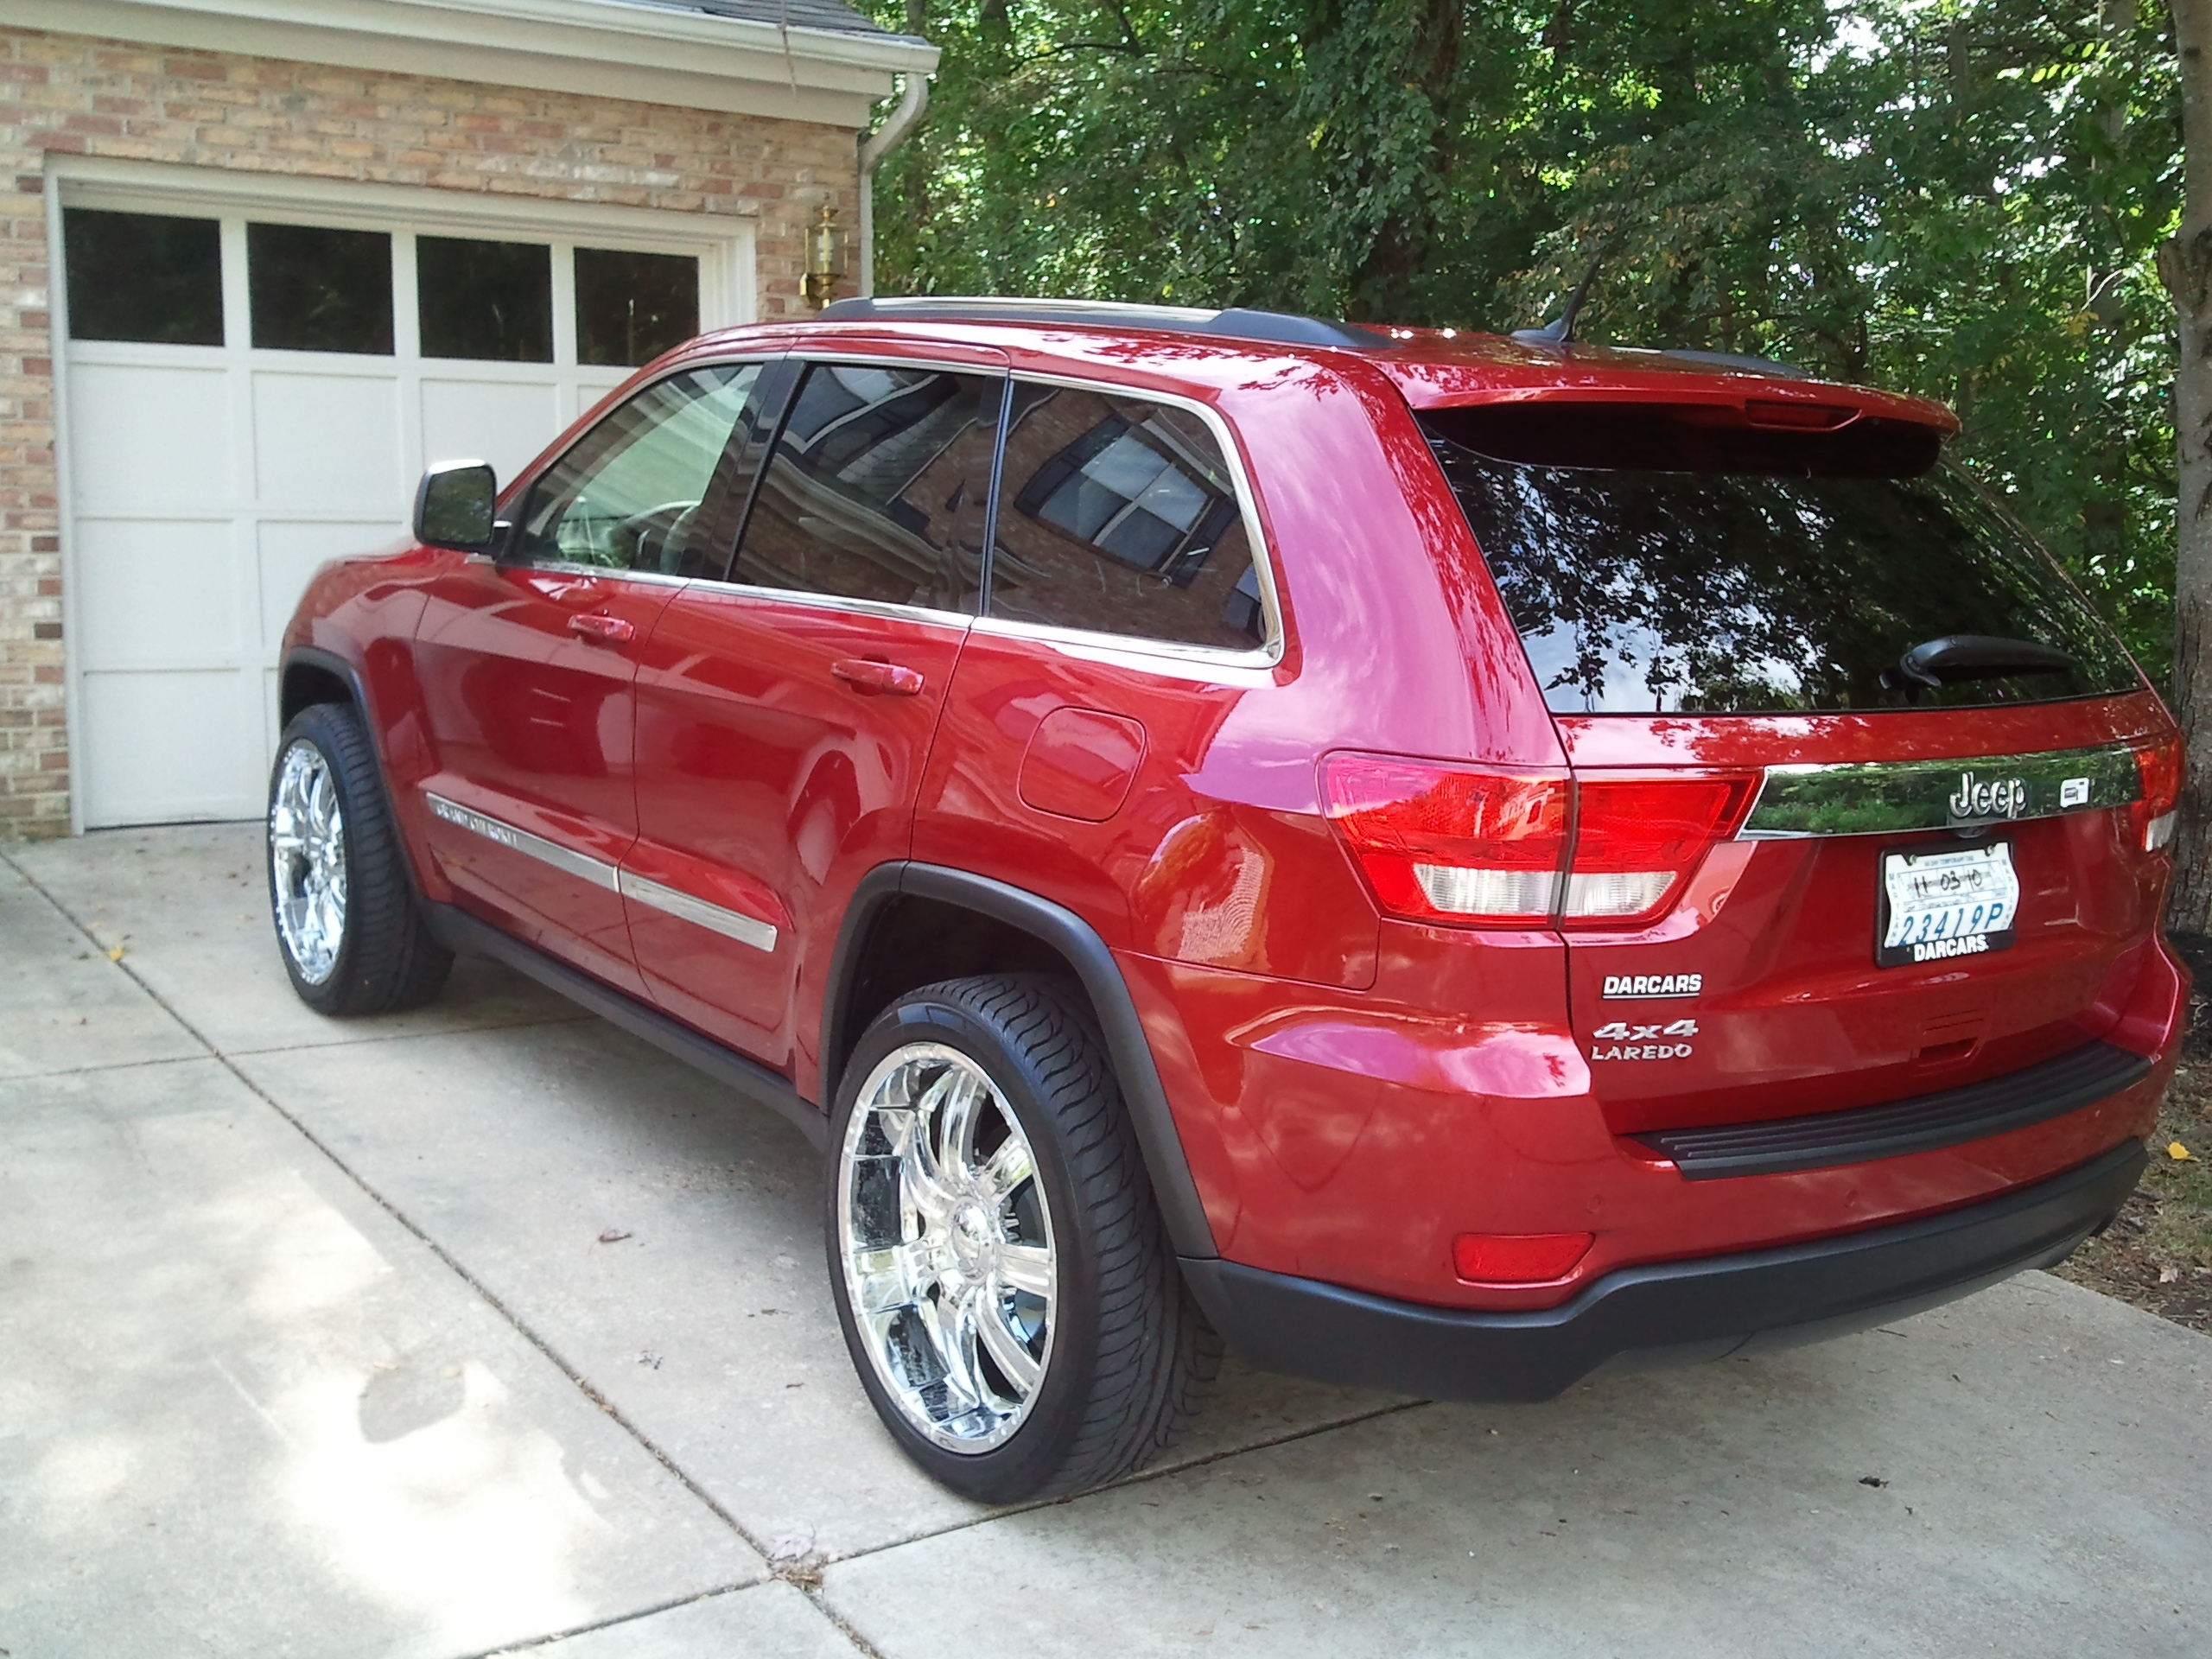 ddg1982 2011 jeep grand cherokee specs photos modification info at cardomain. Black Bedroom Furniture Sets. Home Design Ideas